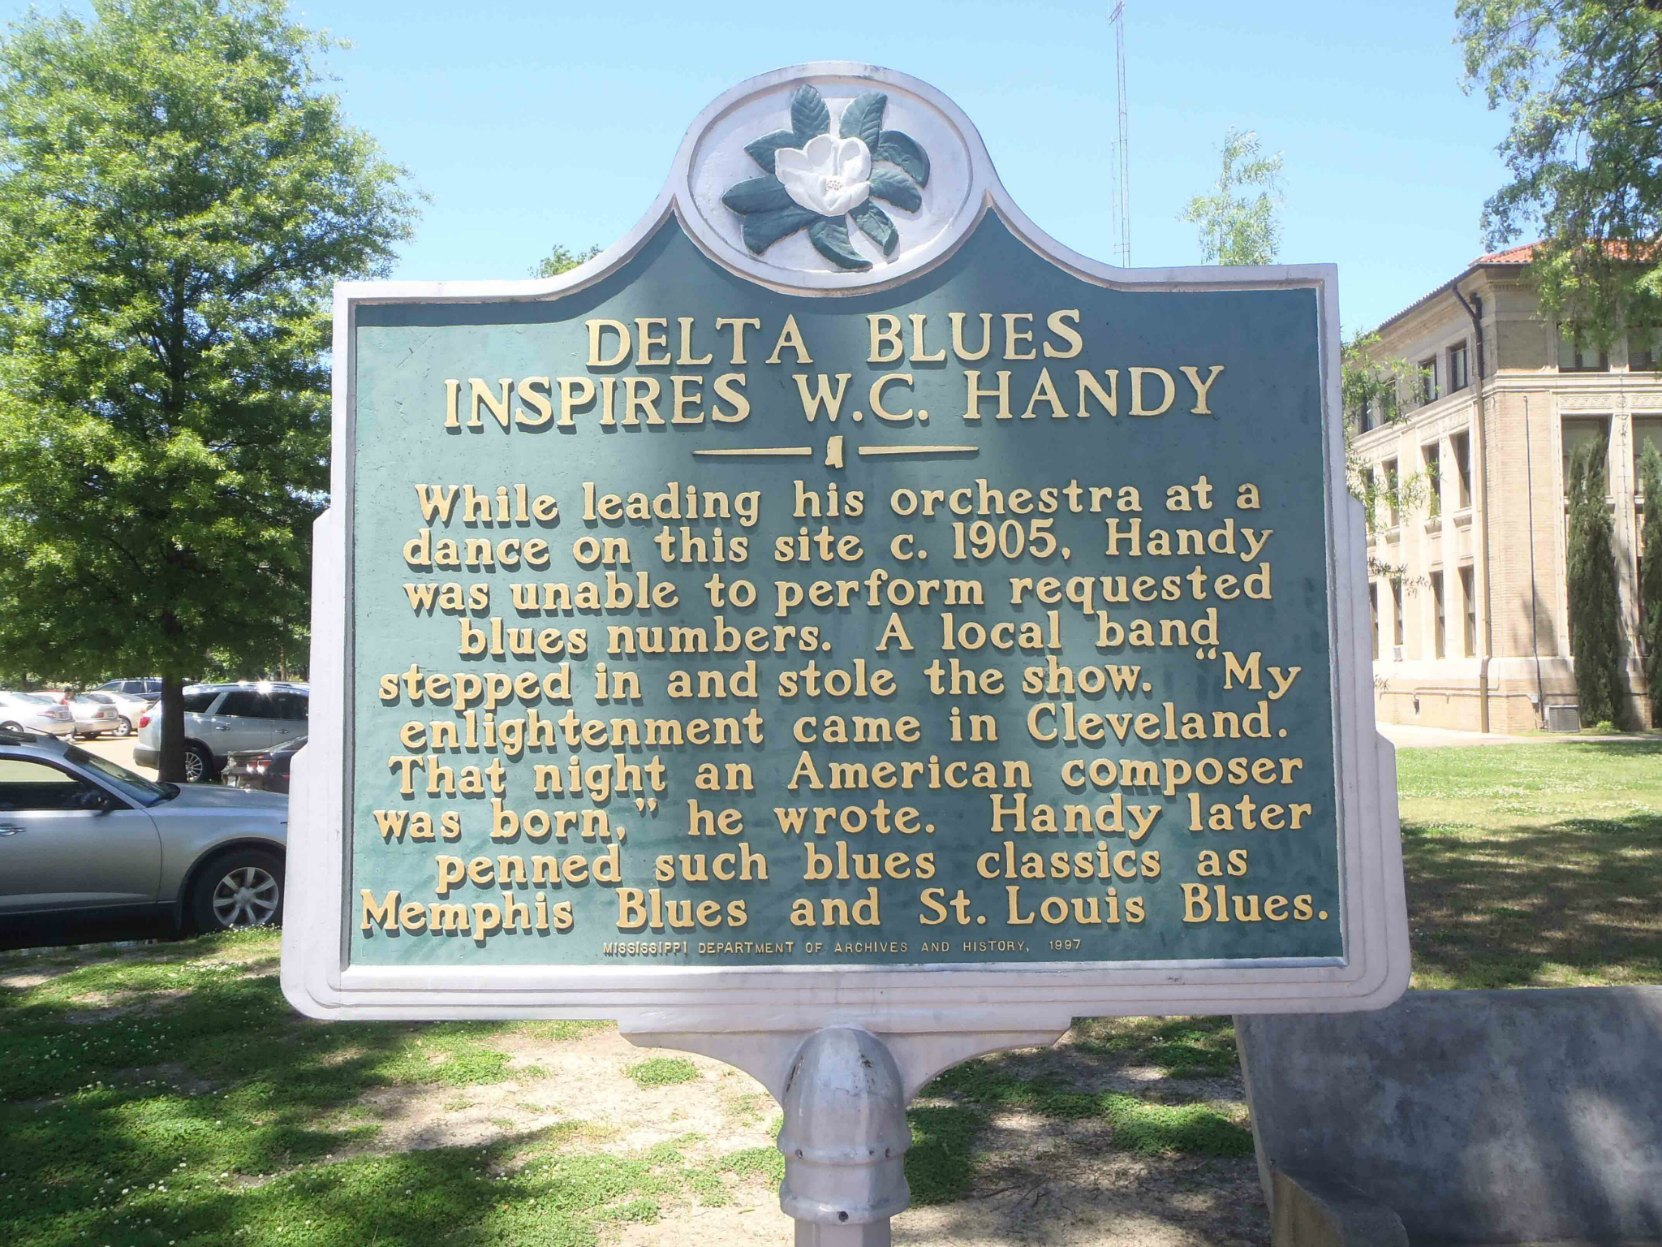 Mississippi Department of Archives & History marker commemorating Delta Blues Inspires W.C. Handy, outside the Bolivar County Courthouse, Cleveland, Mississippi